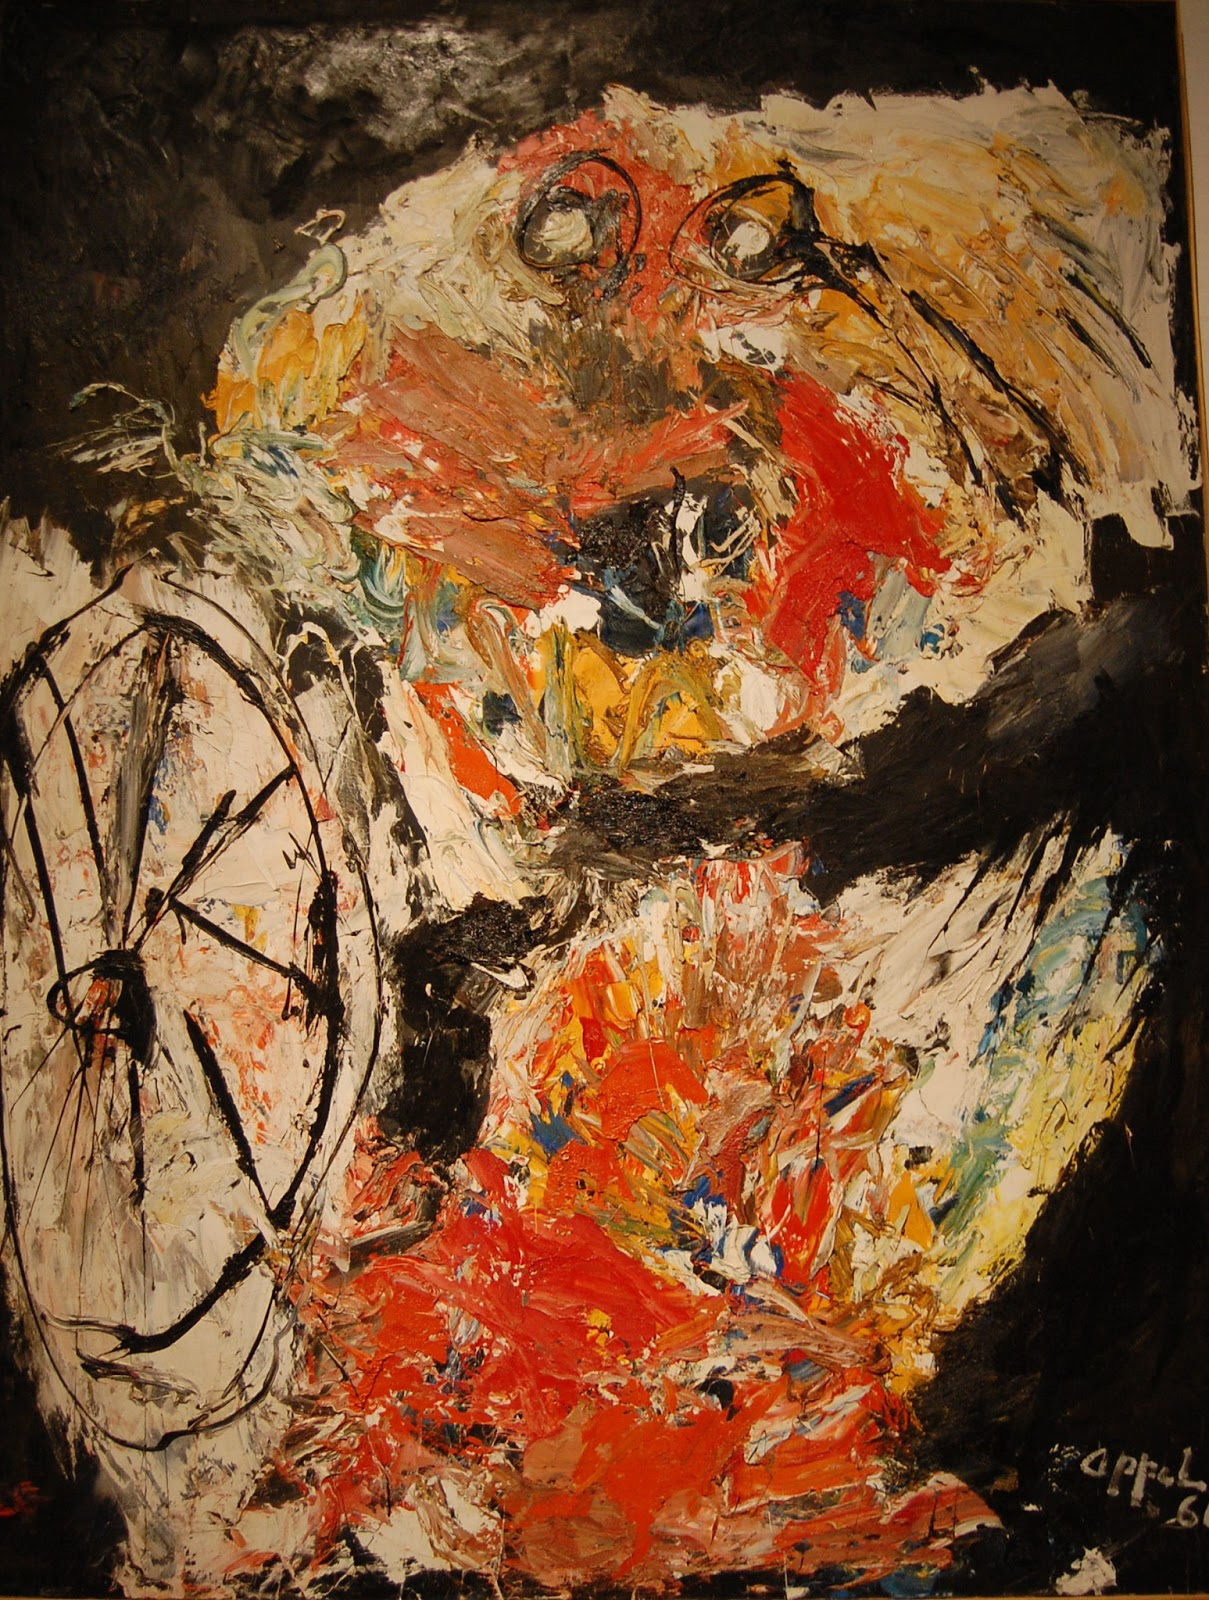 Karel Appel, Vlammend kind met hoepel, 1961